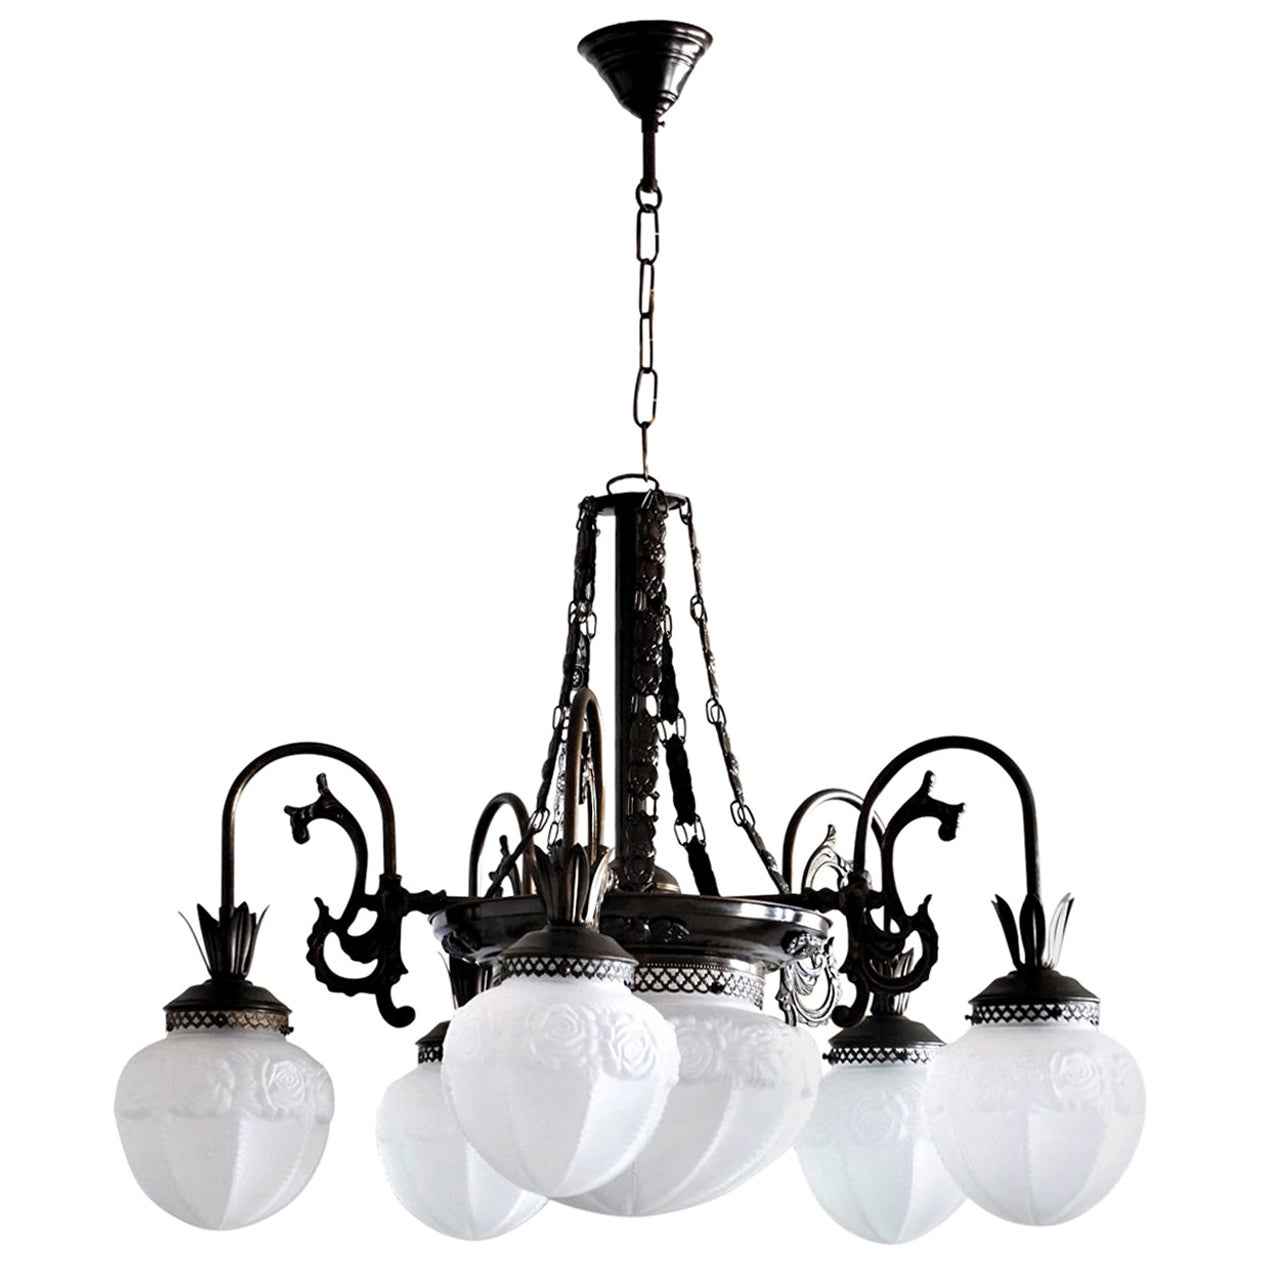 French Art Deco Brass Frosted Glass Seven-Light Chandelier